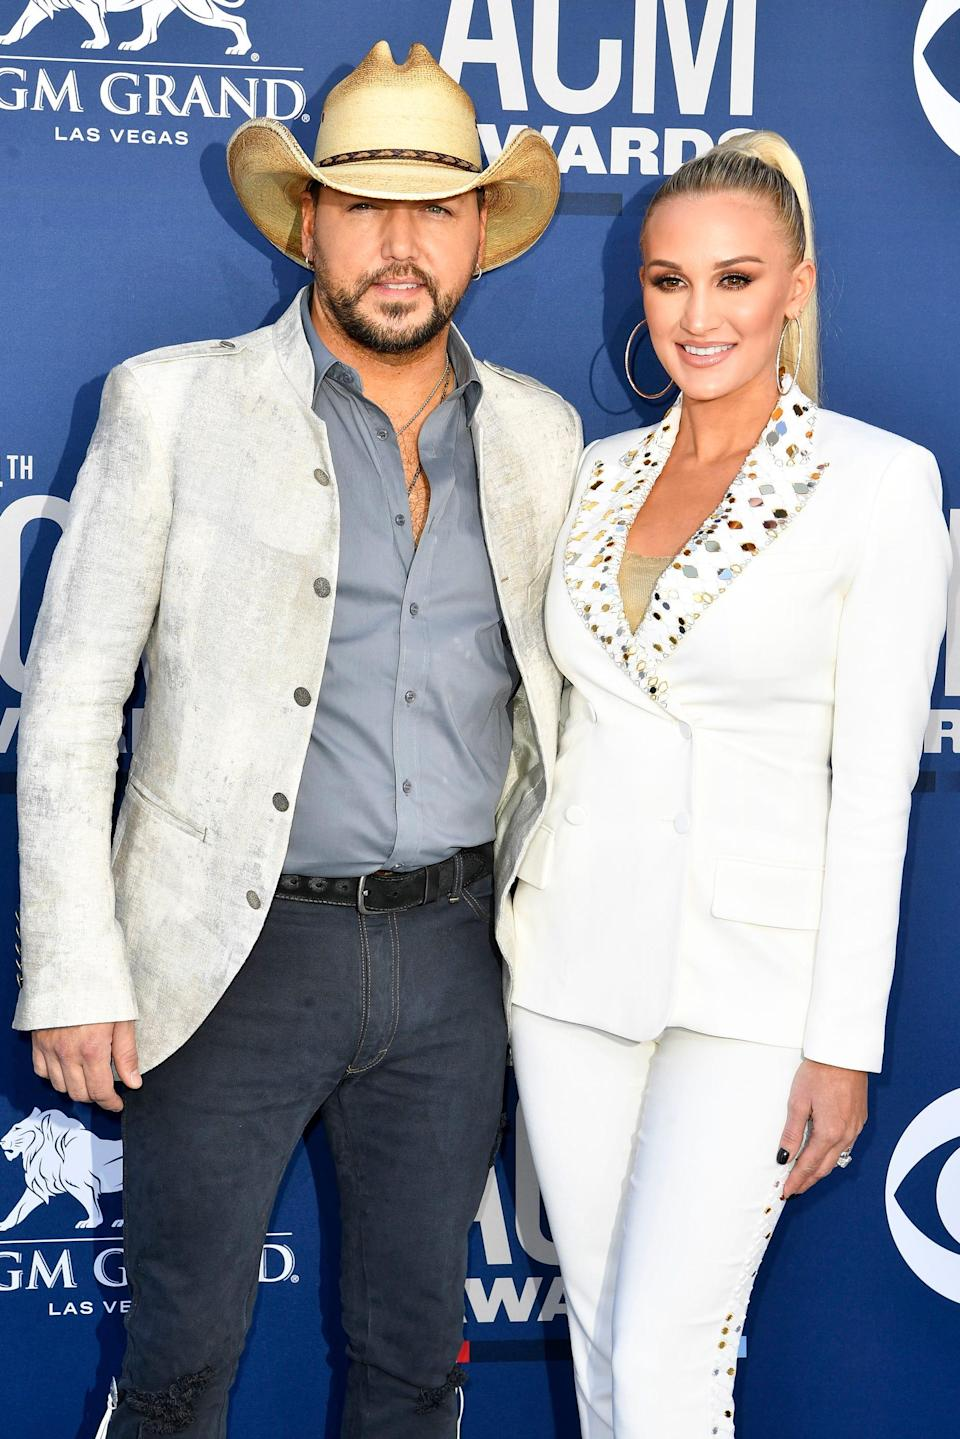 Jason Aldrin, left, with Brittany Kerr Aldin, walks the red carpet at the 54 Academy Awards for Country Music Awards on Sunday, April 7, 2019, in Las Vegas, Neva.